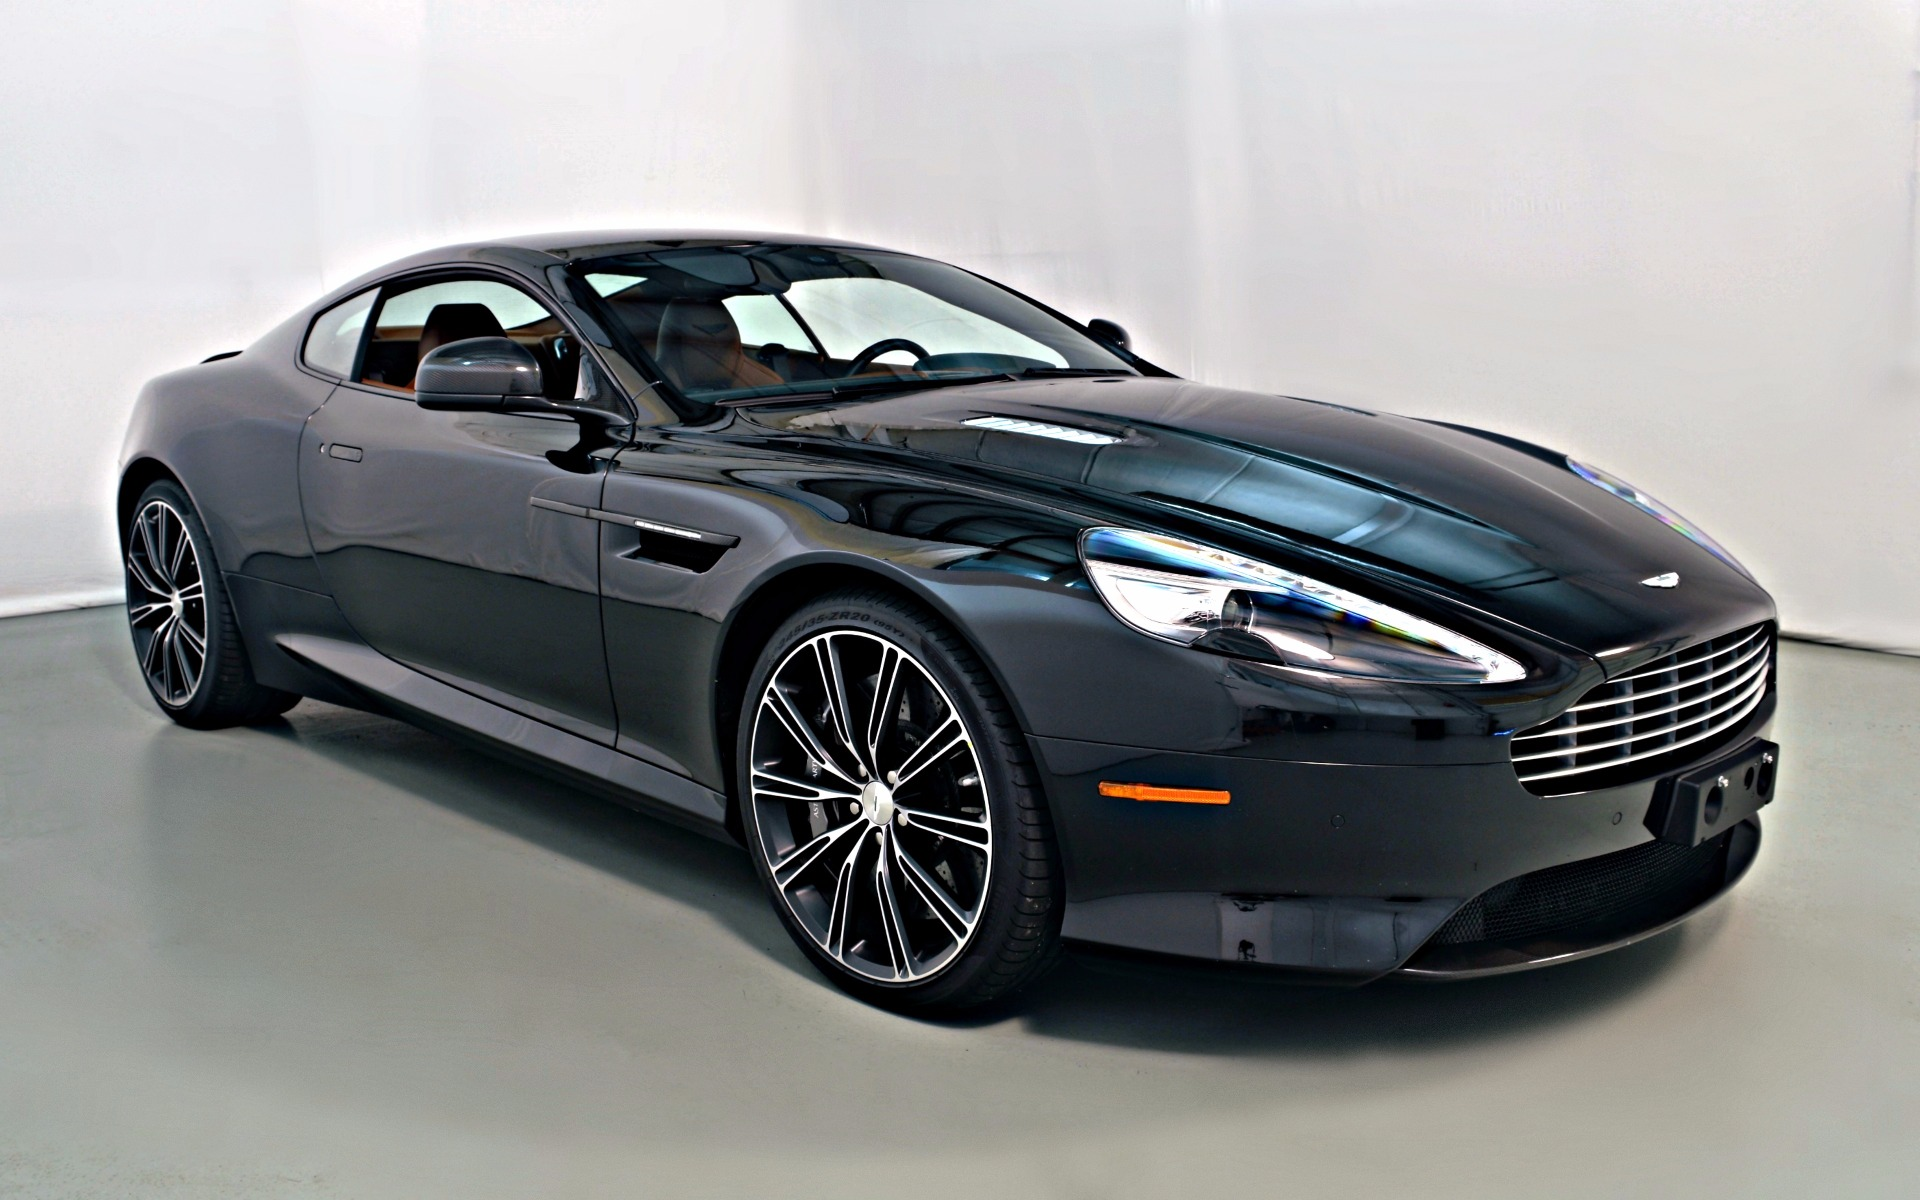 2015 aston martin db9 carbon edition for sale in norwell ma a16225 mclaren boston. Black Bedroom Furniture Sets. Home Design Ideas